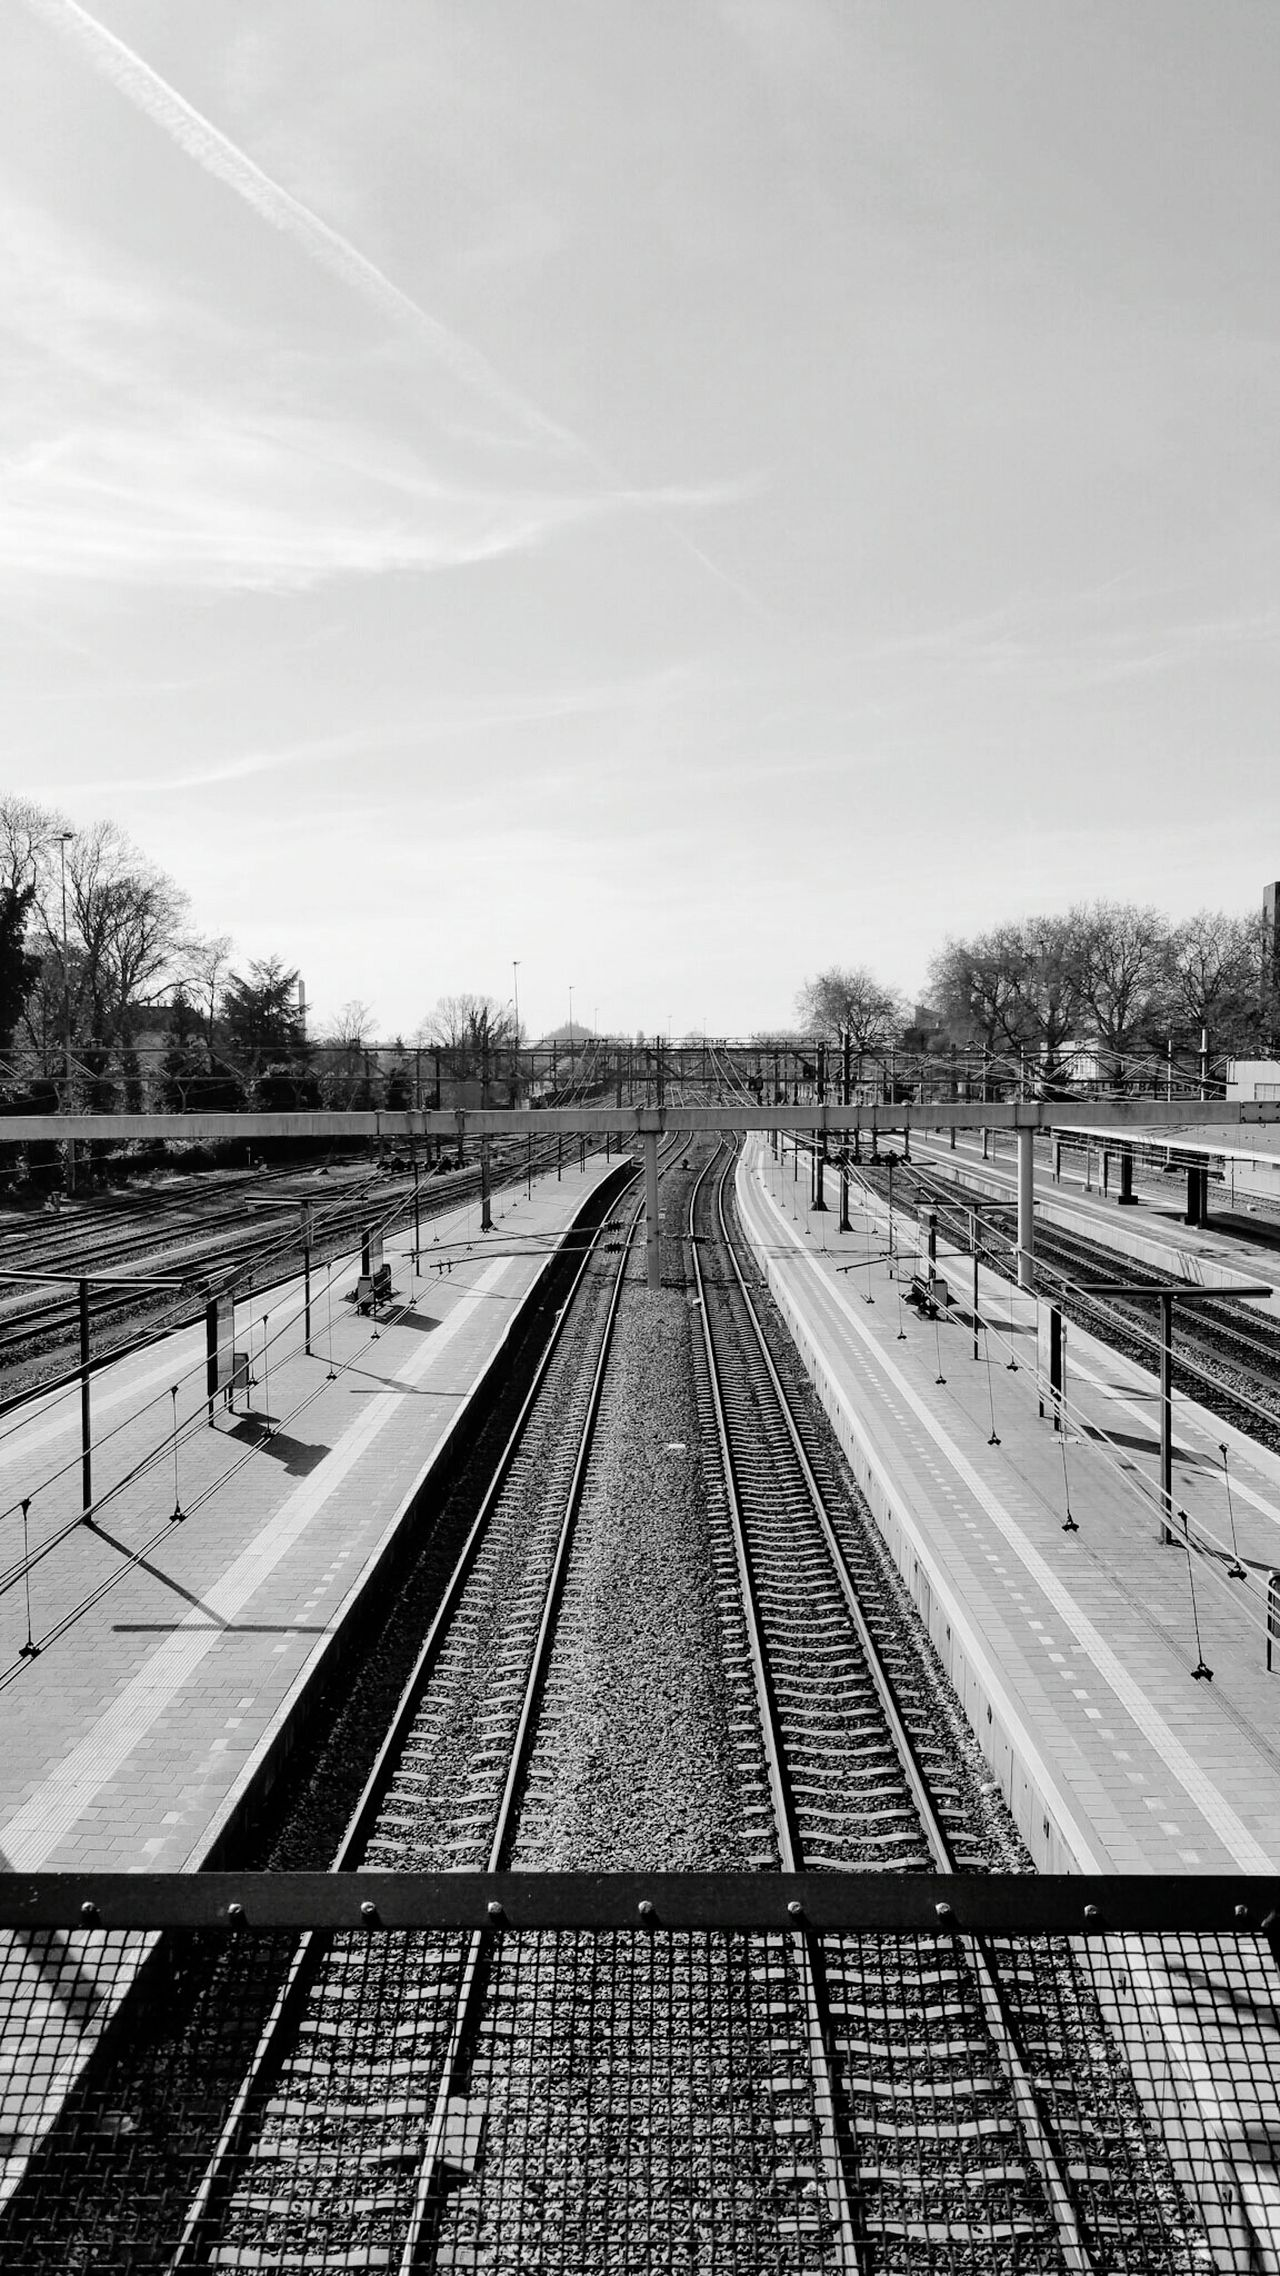 Railroad Station Dordrecht 2016 The Netherlands Taking Photos Enjoying Life May/mei Urbanphotography Zuid Holland Taking Photos Morning Railroad Track Rails TreinStation Ochtend Treinrails My Commute-2016 EyeEm Photography Awards